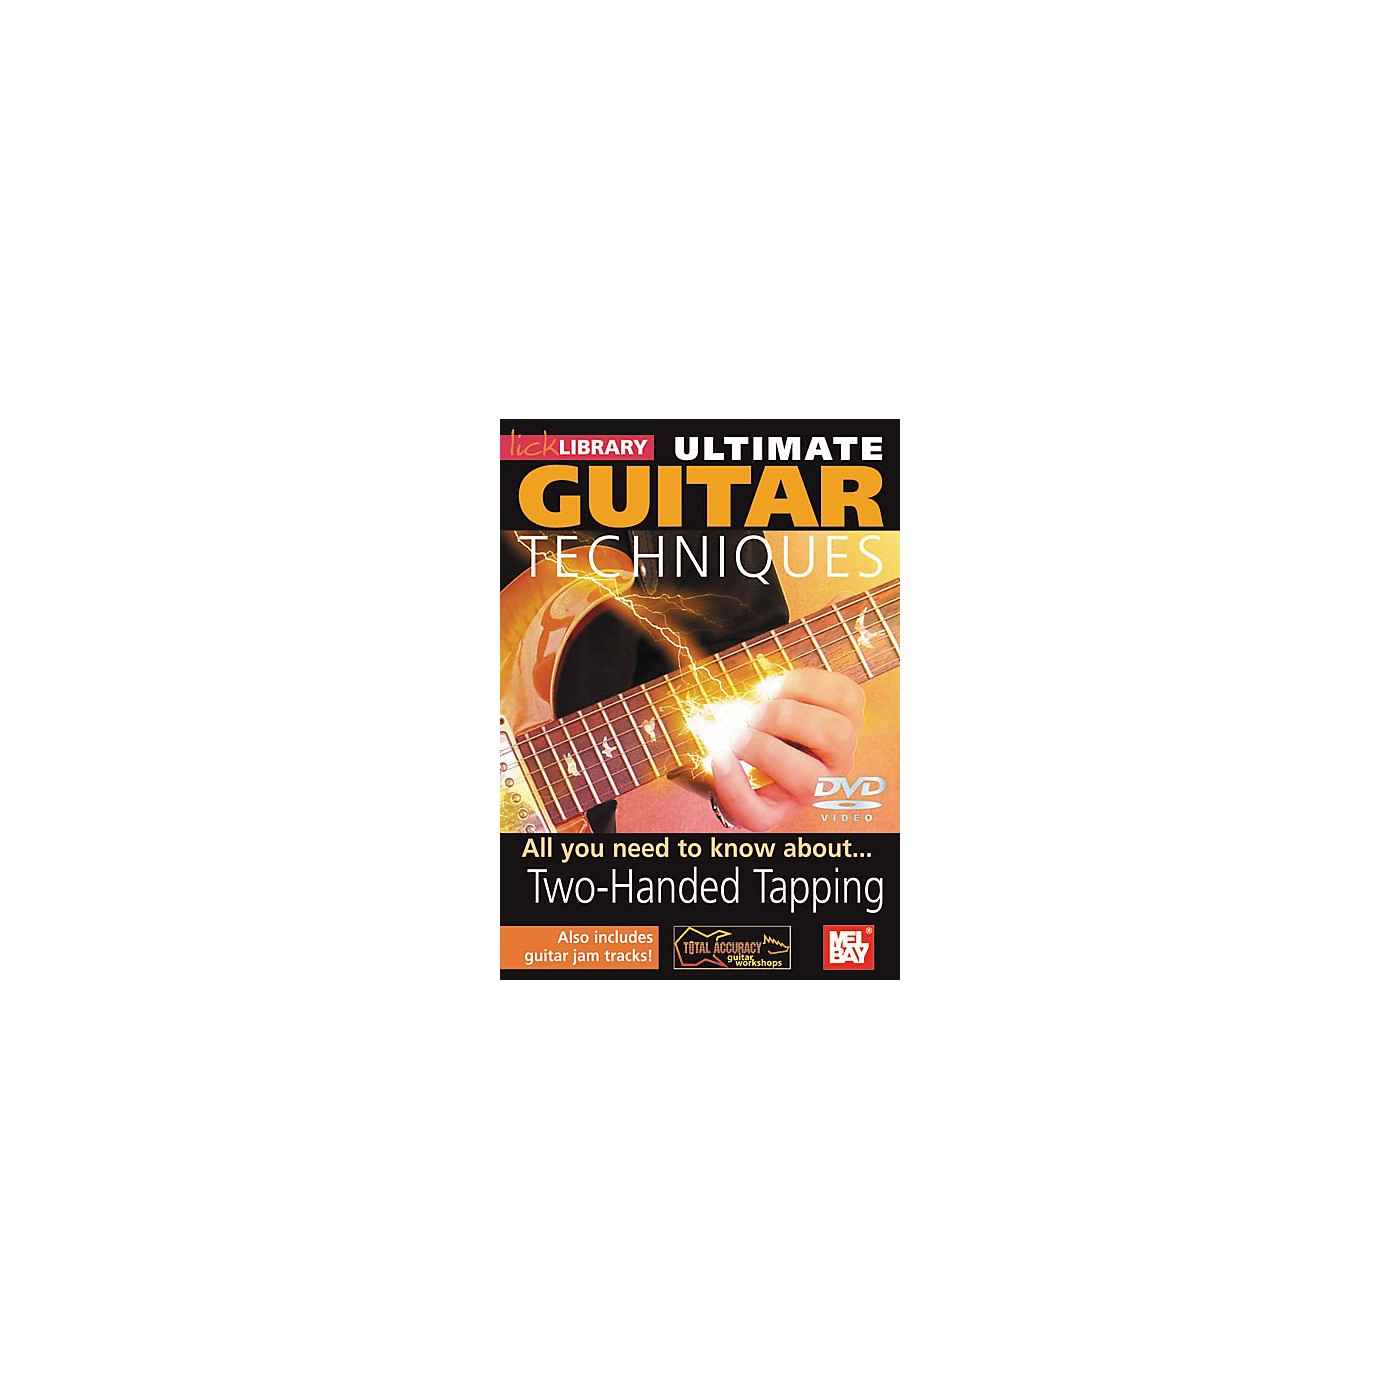 Mel Bay Lick Library Ultimate Guitar Techniques: Two-Handed Tapping DVD thumbnail